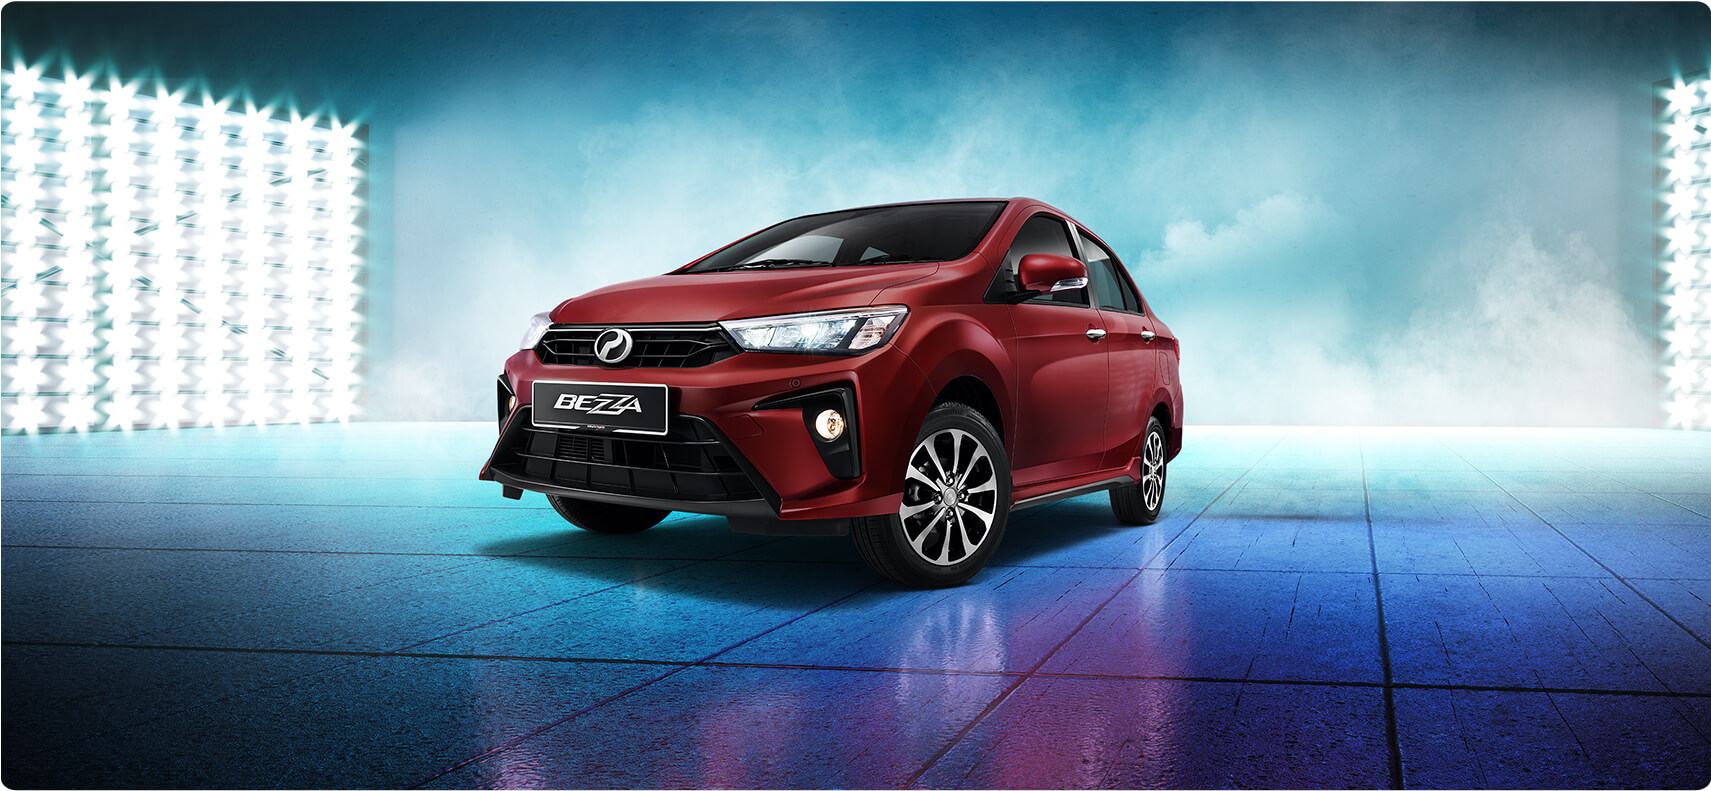 Love the new Perodua Bezza? Get it now!